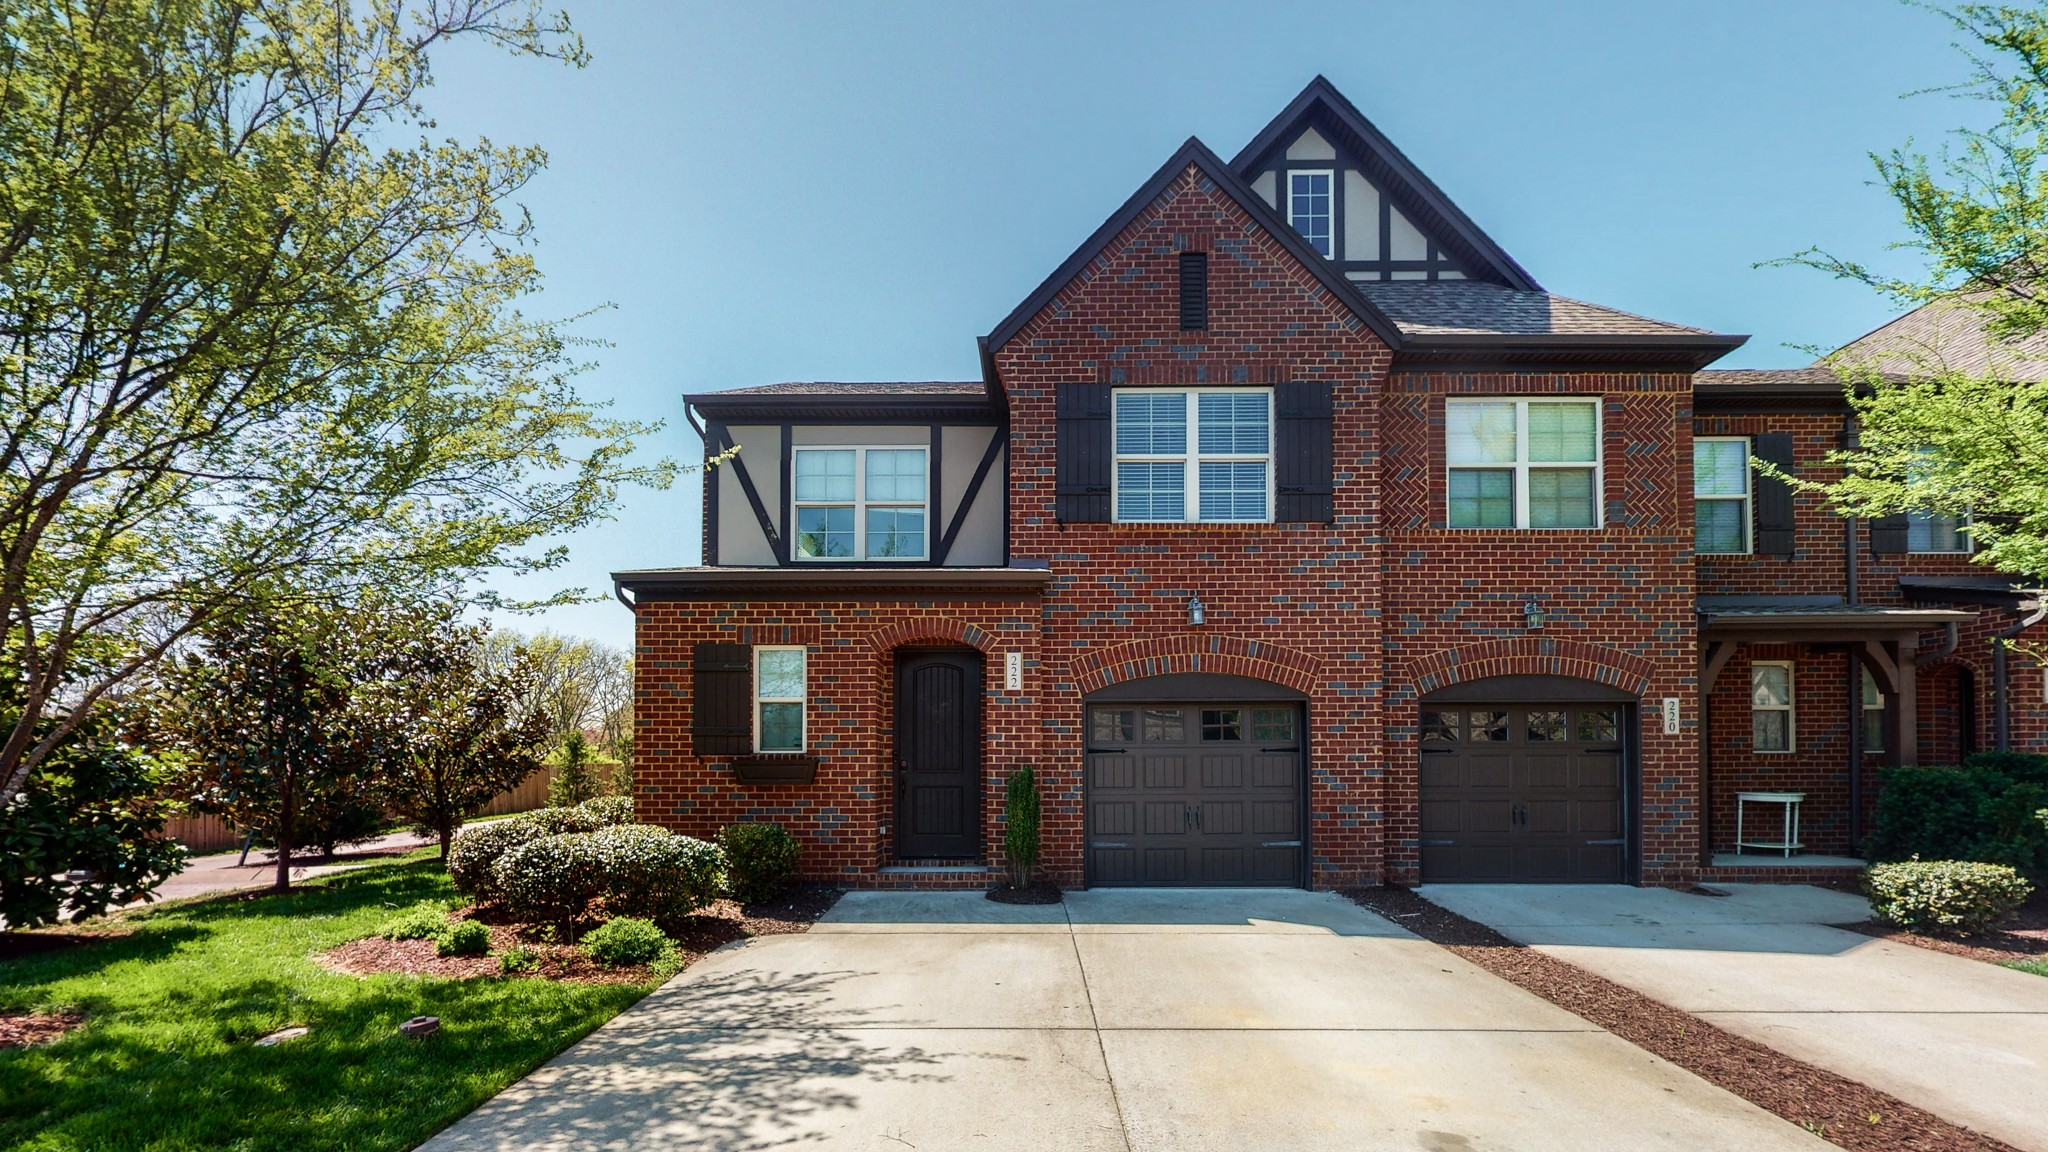 222 Bixby Private Ln Property Photo - Hendersonville, TN real estate listing